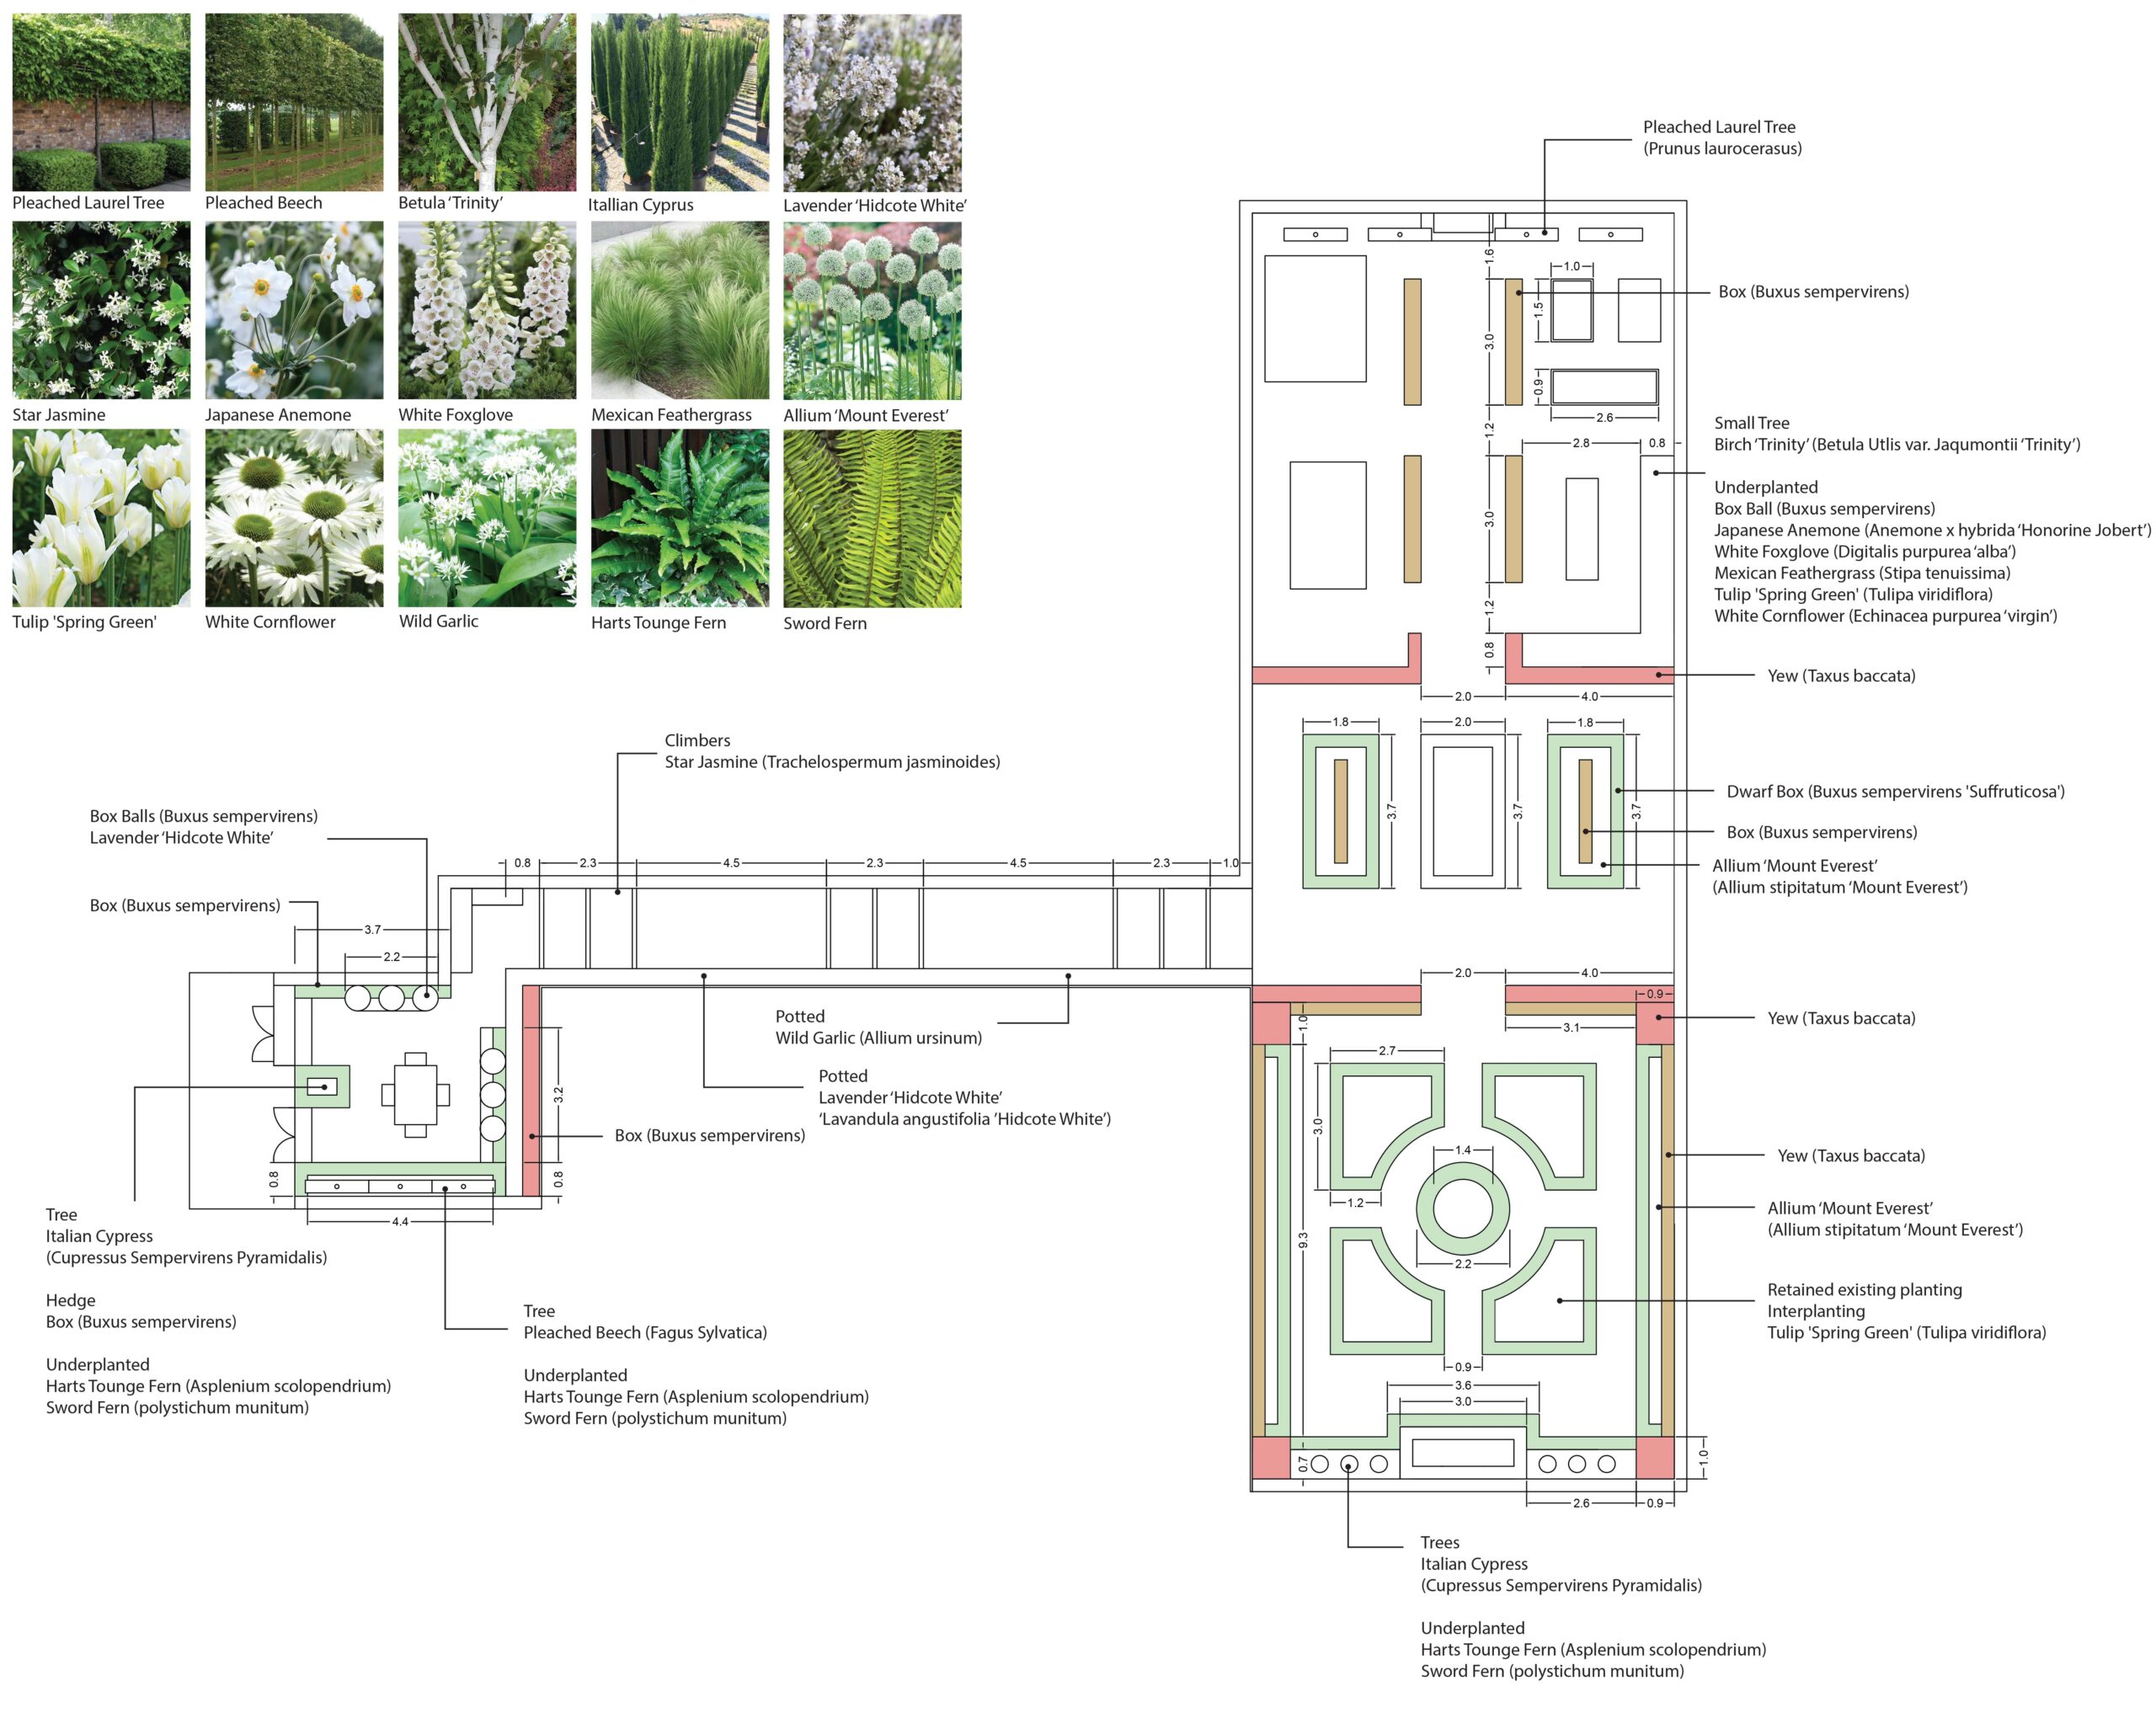 Lechlade_Planting_design